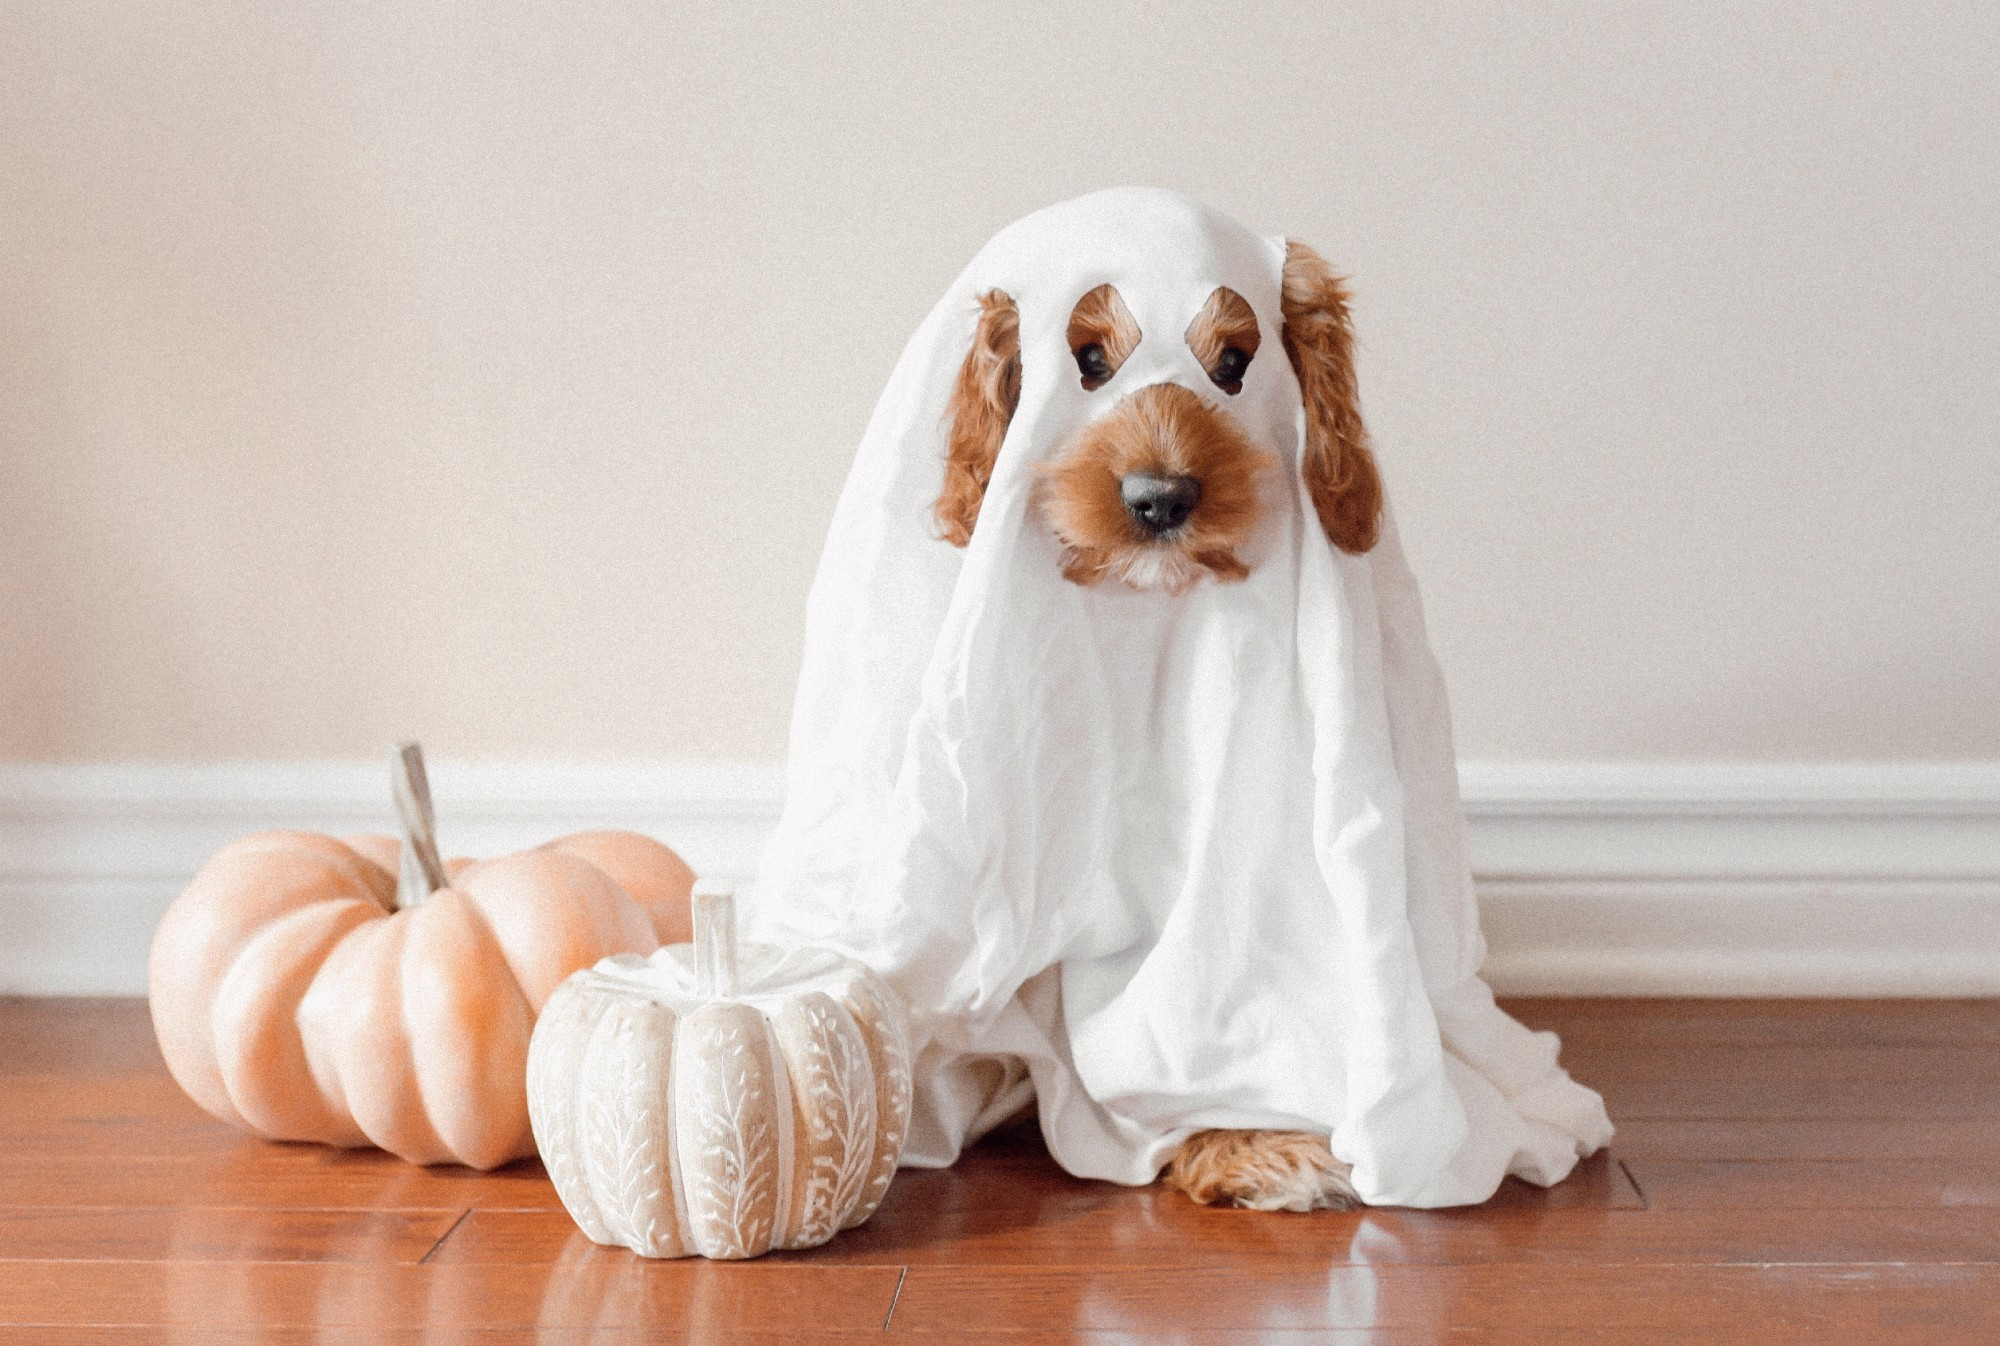 5 Essential Safety Tricks That Make Halloween a Treat for Your Pup